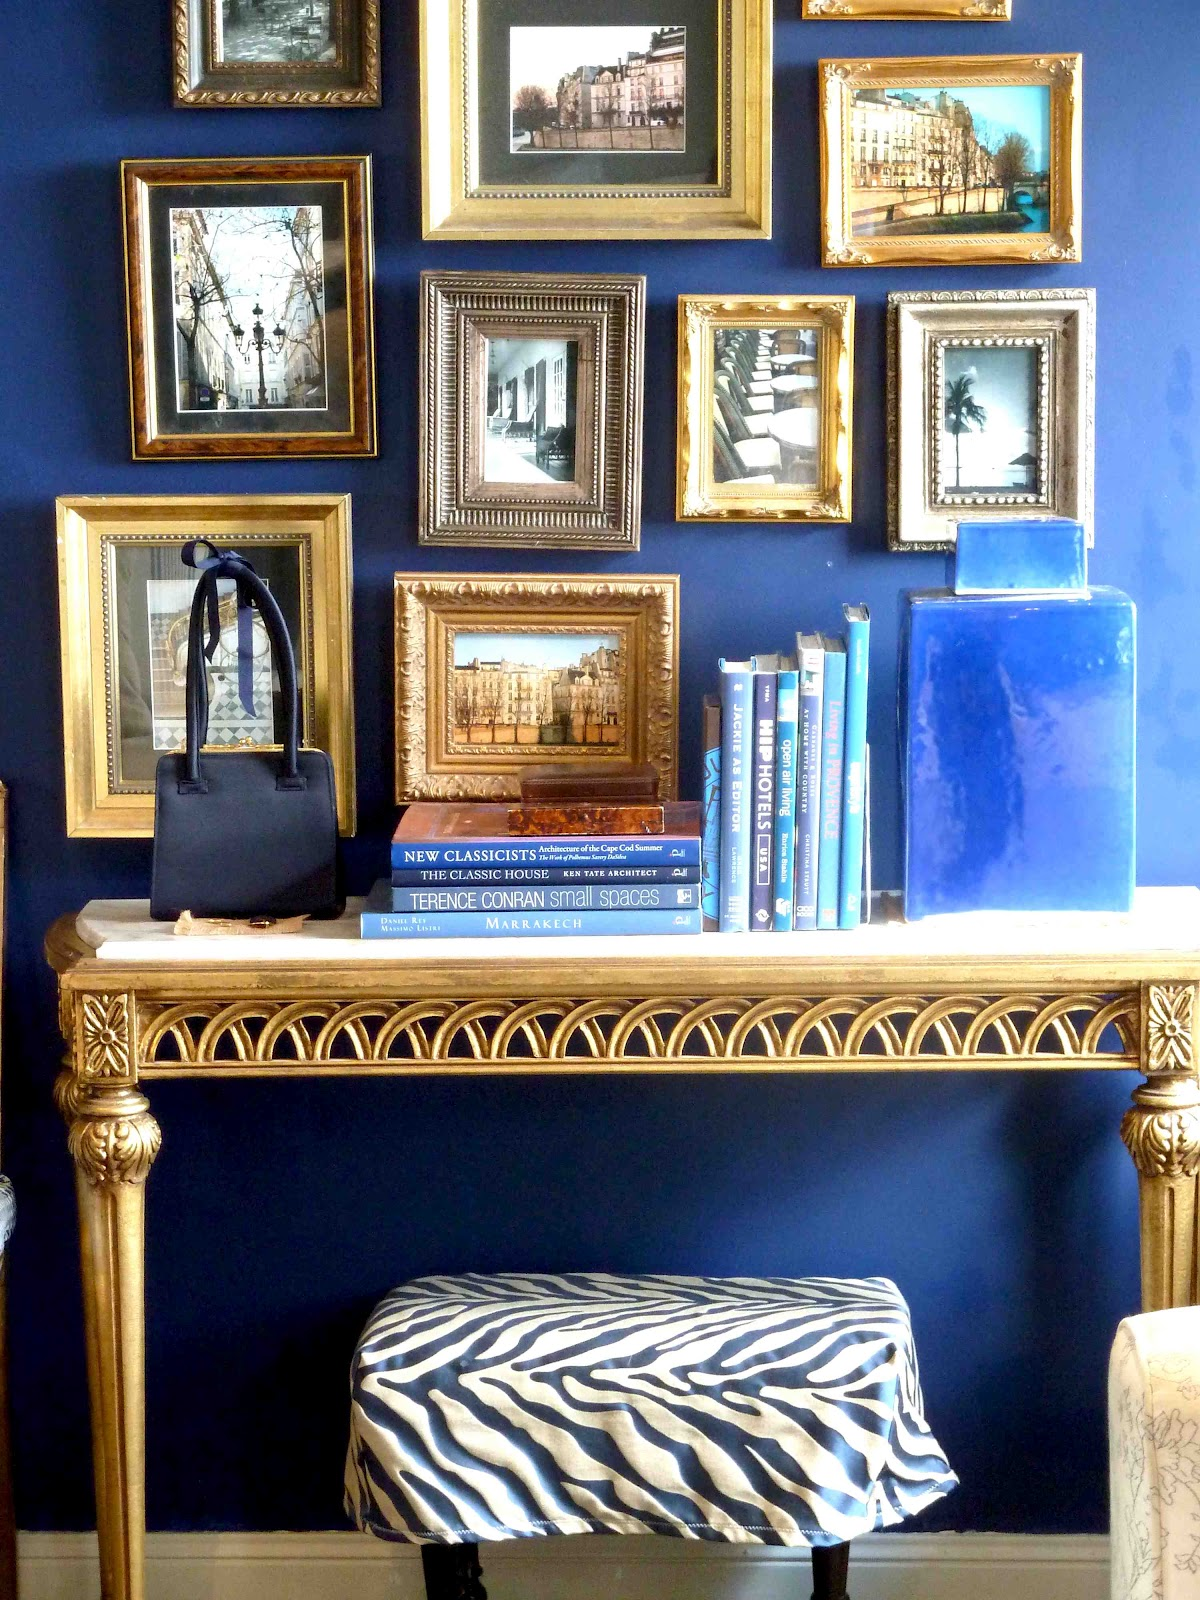 Janelle McCulloch's Library of Design: The Enduring Appeal of Navy ...